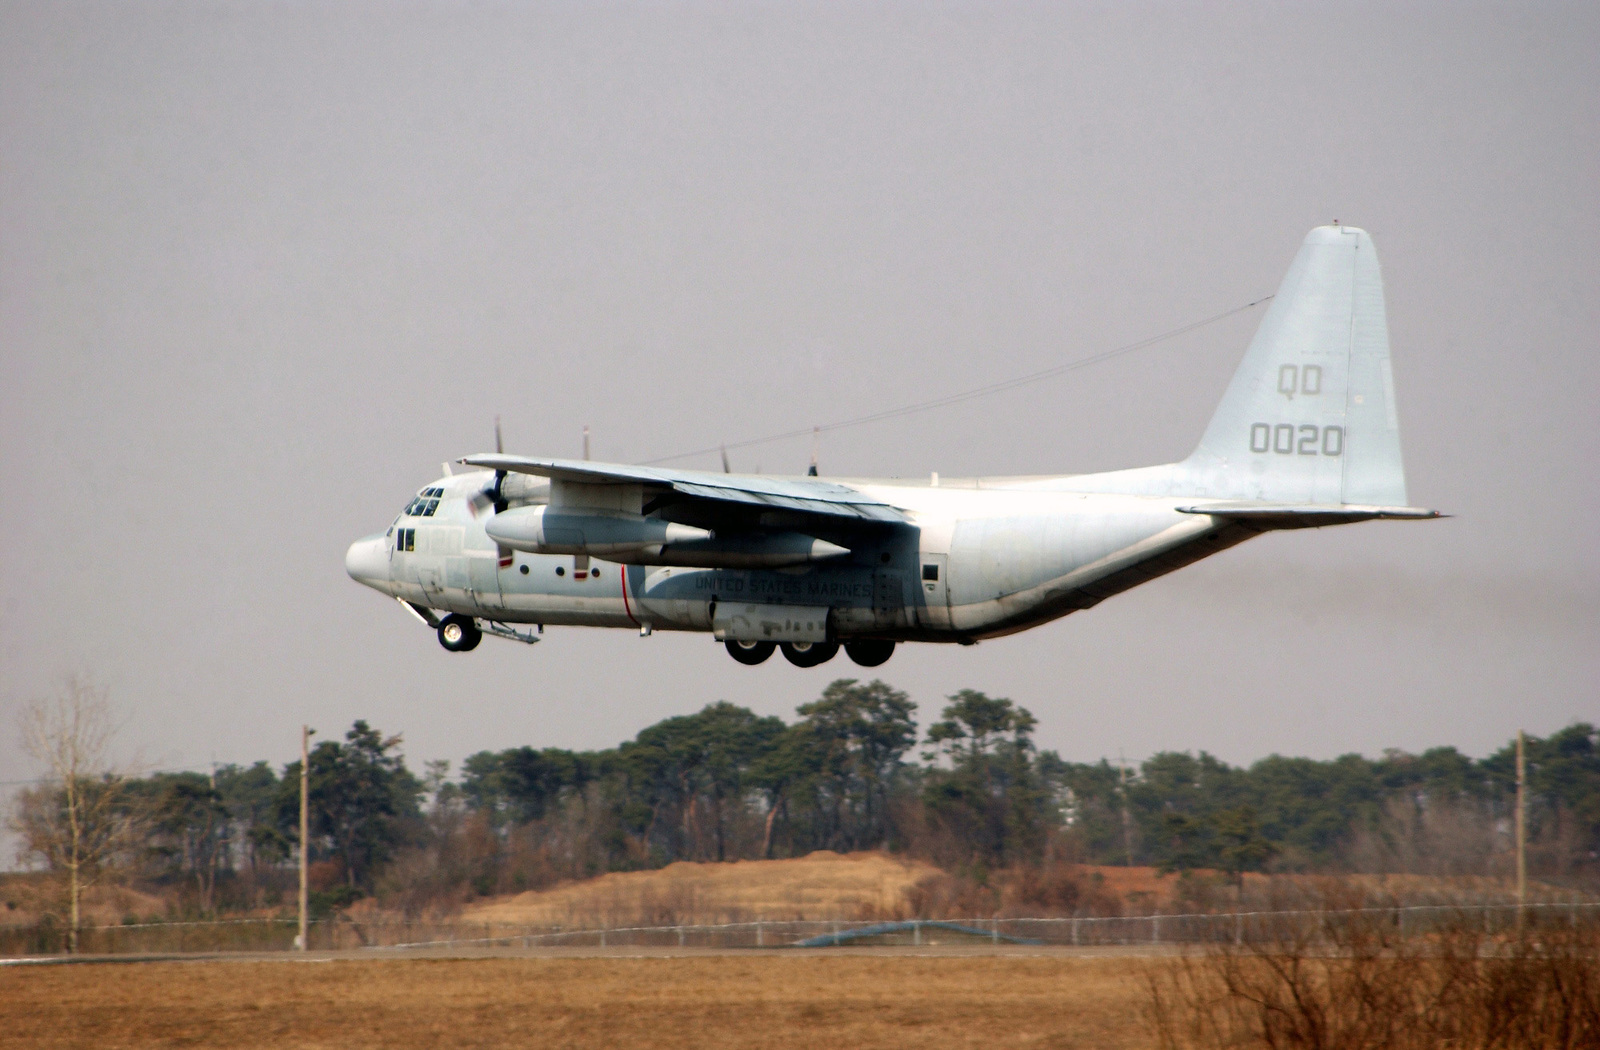 A US Marine Corps (USMC) Marine Wing Support Squadron (MWSS) 172 (MWSS-172), Marine Wing Support Group (MWSG) 17 (MWSG-17), 1ST Marine Aircraft Wing (MAW), C-130 Hercules cargo aircraft takes off from the flight line at Camp Humphreys, near Pyongtaek, Gyeonggi-do Province, Republic of Korea (KOR), while participating in Korea Field Training Exercise 2004 (FTX 2004). Korea FTX 04 is part of a Reception Staging Onward Moving and Integration (RSO&I) theater-level training exercise designed to test the 1ST MAWs ability to rapidly deploy its command and control function to the Korean Peninsula